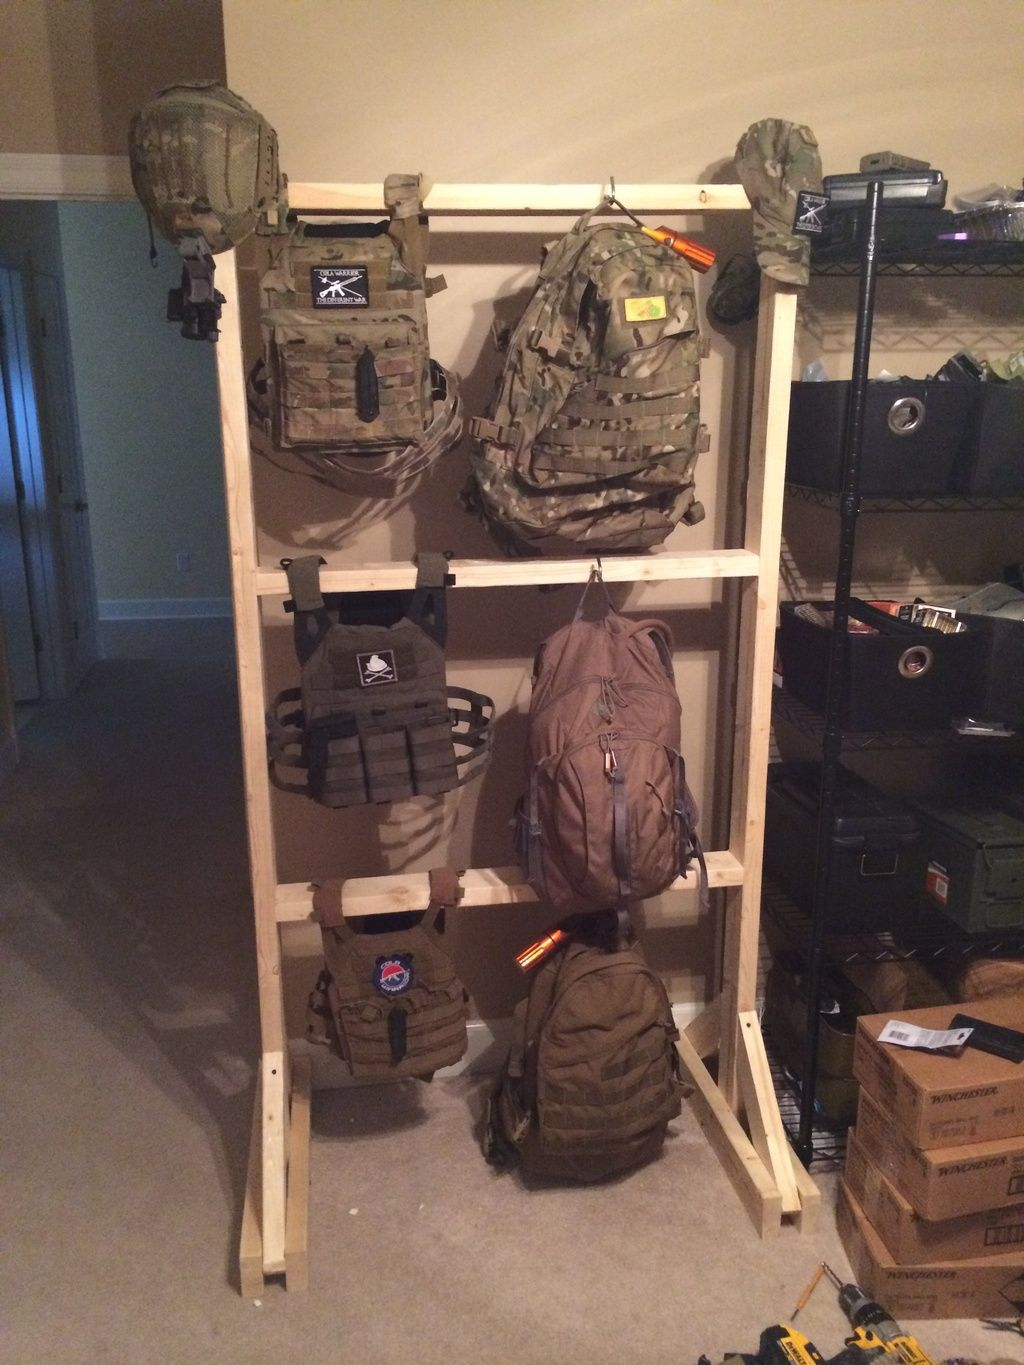 Plate Carrier Thread This Is Now A Post Pics Of Your